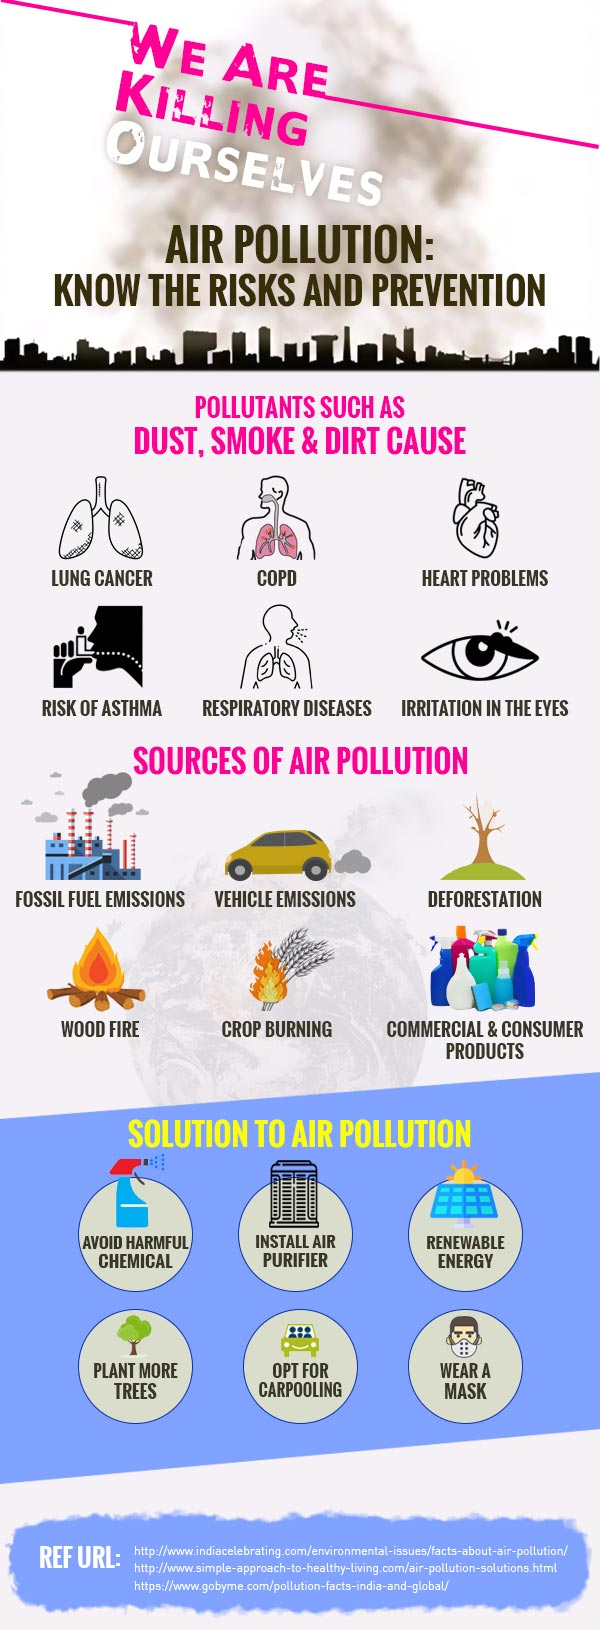 Air Pollution - Know the Risks & Prevention